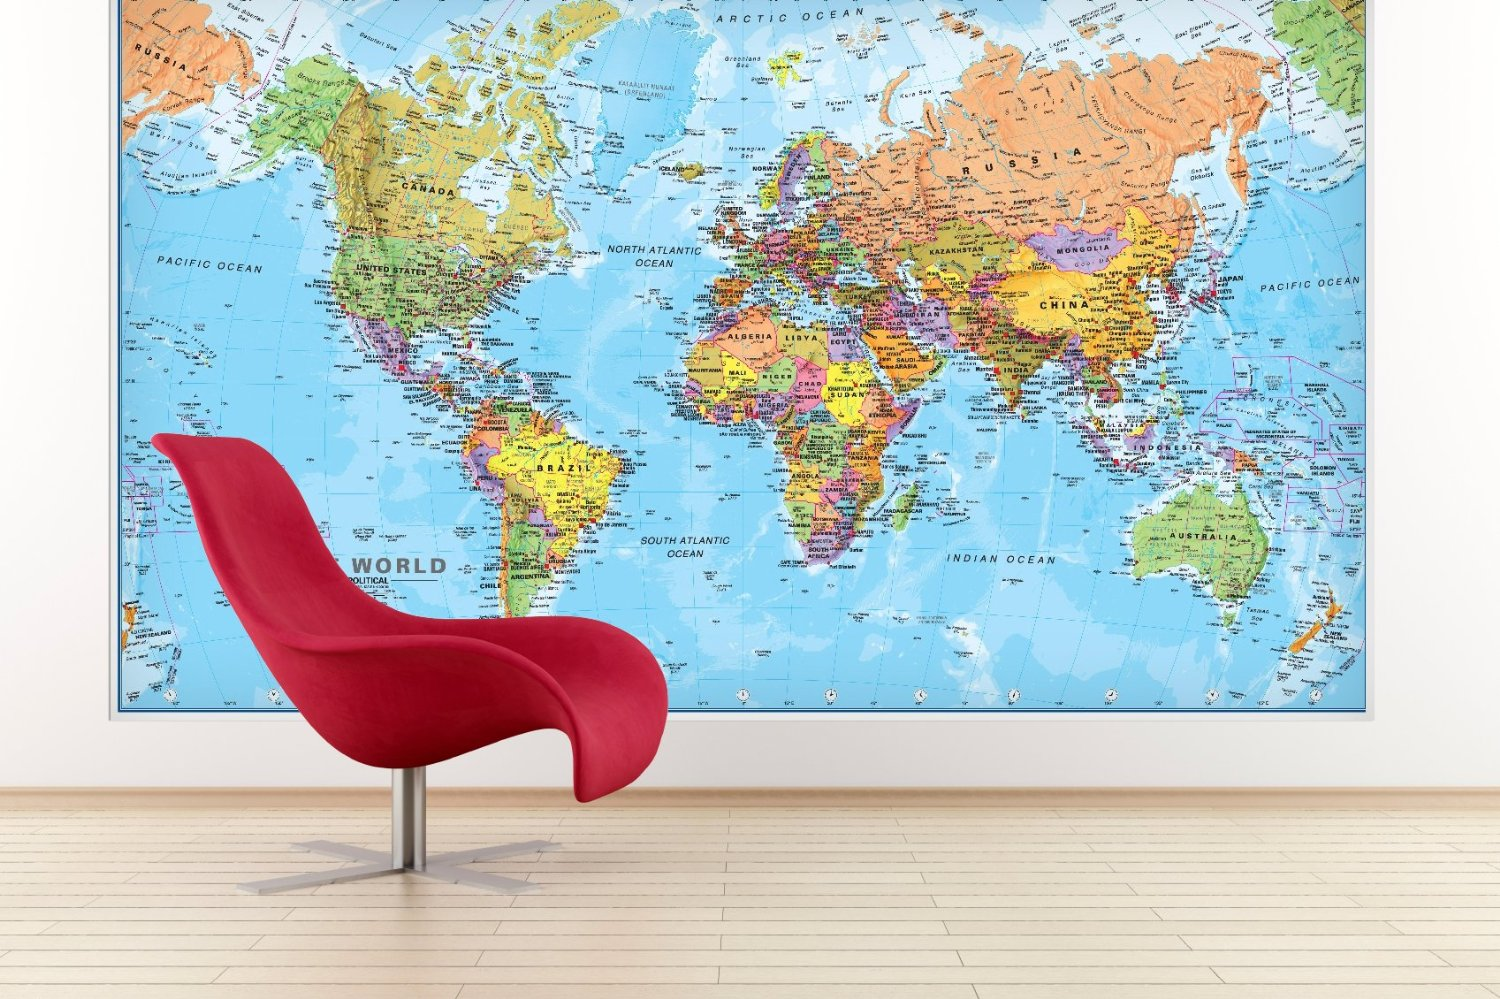 Large Paper World Map.Lightning Deal Alert Giant World Megamap Large Wall Map Paper